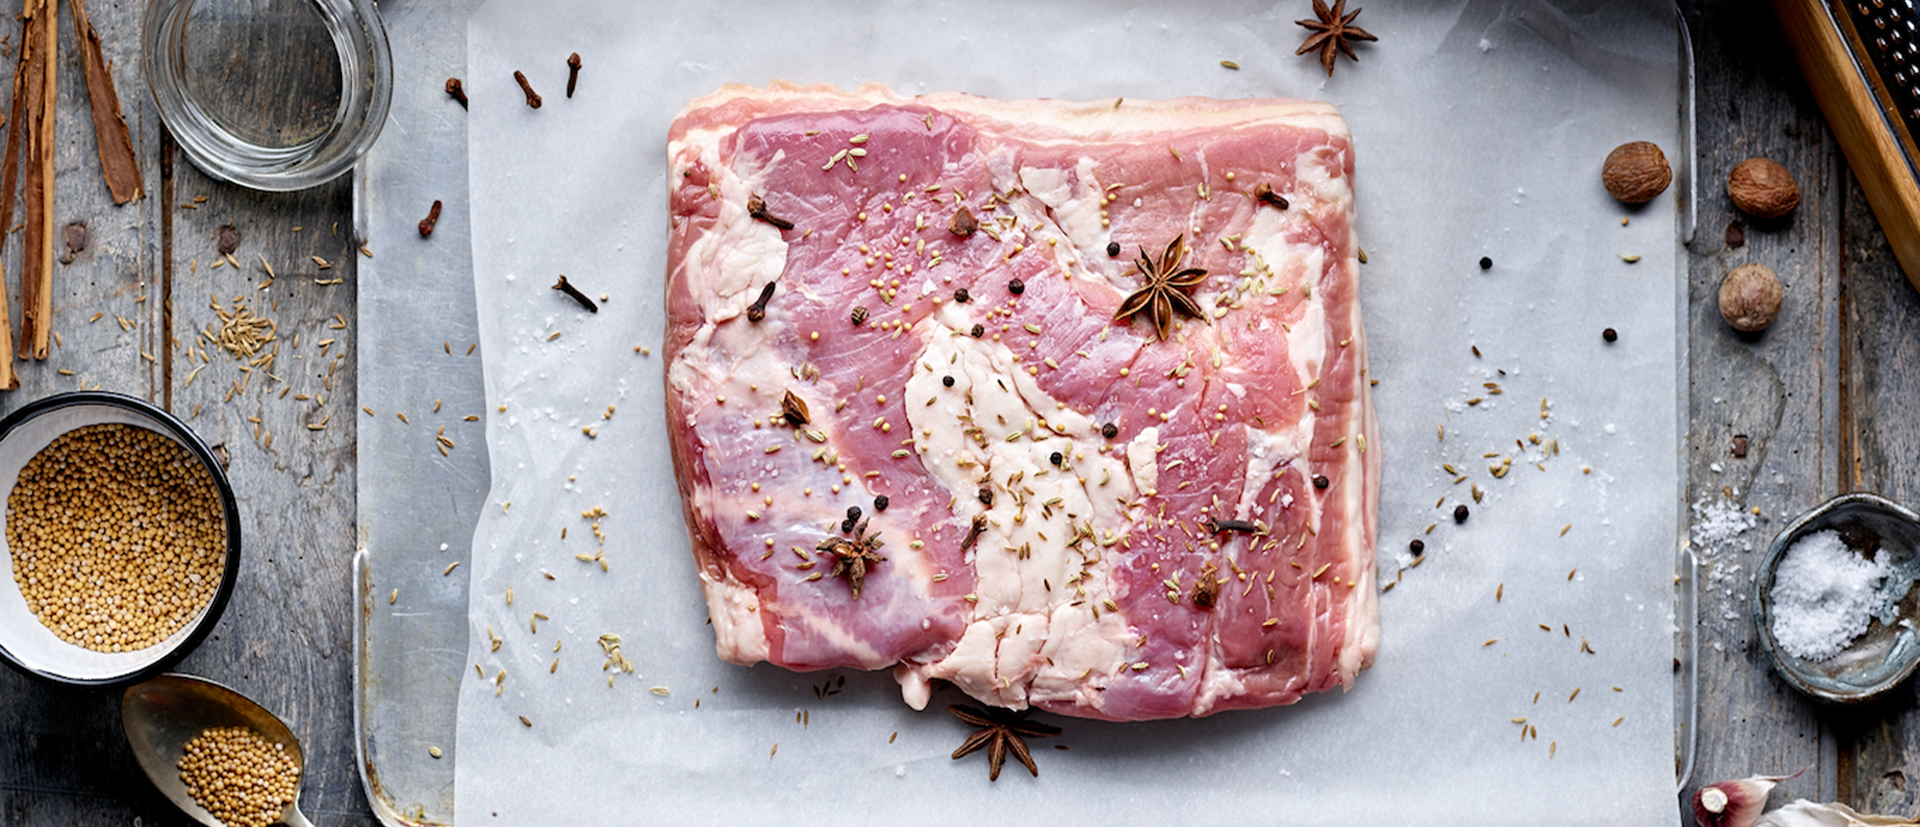 Everything You Ever Needed to Know About Pork Cuts - Coombe Farm